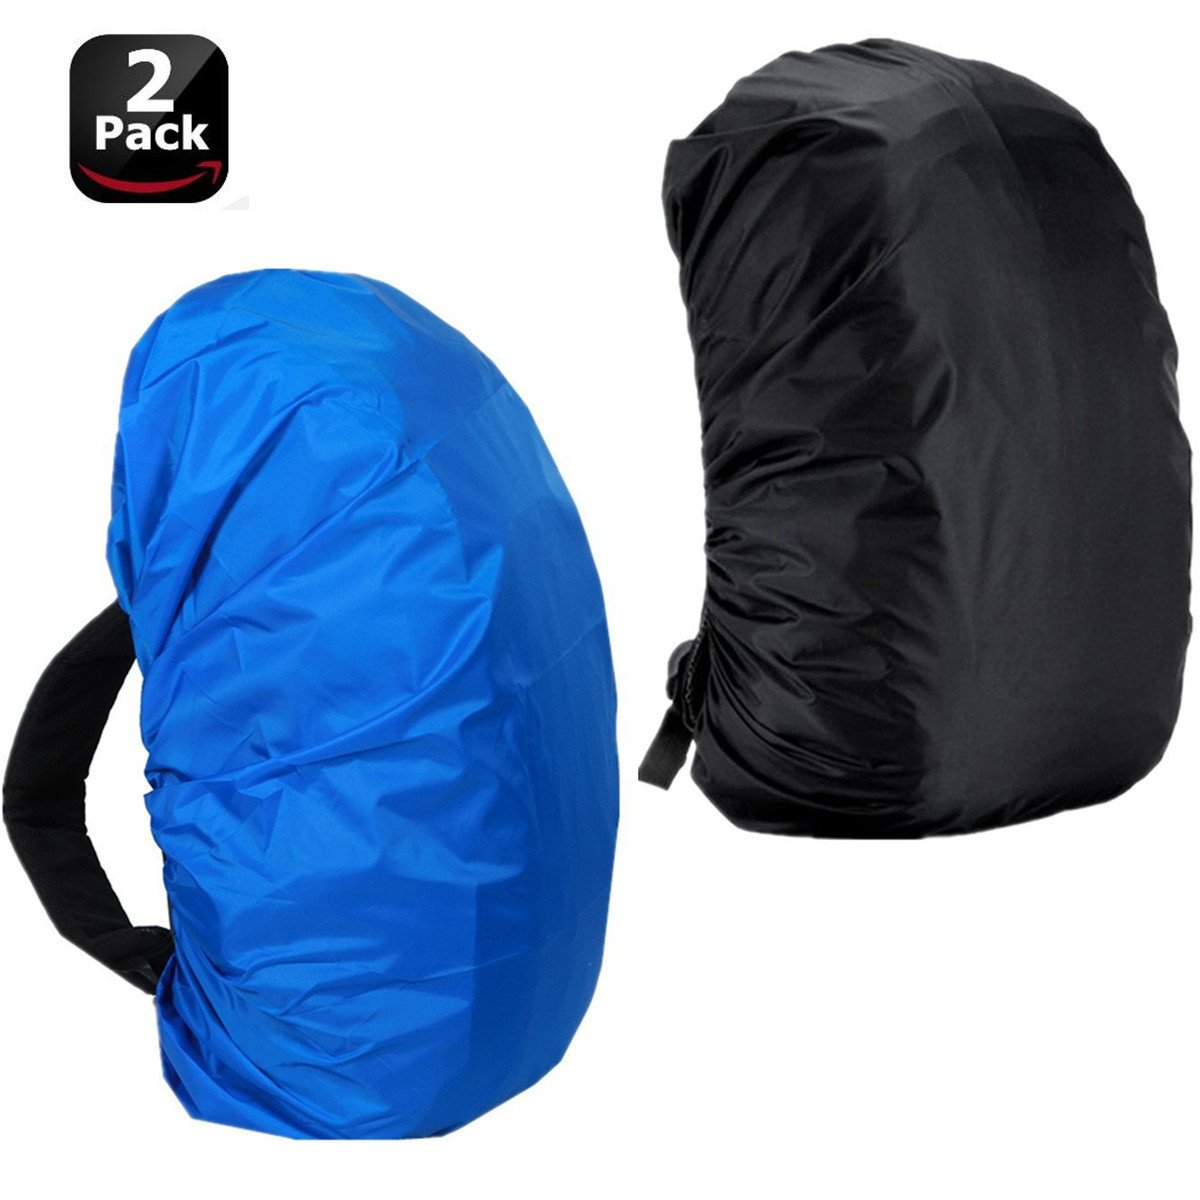 Lanticy Backpack Rain Cover, 2 Pack Waterproof Pack Bag Rain Covers 30L-40L Large Small Tear Resistance Dustproof Rainproof Protector Adjustable Elastic Raincover for Travel and Outdoor Activities